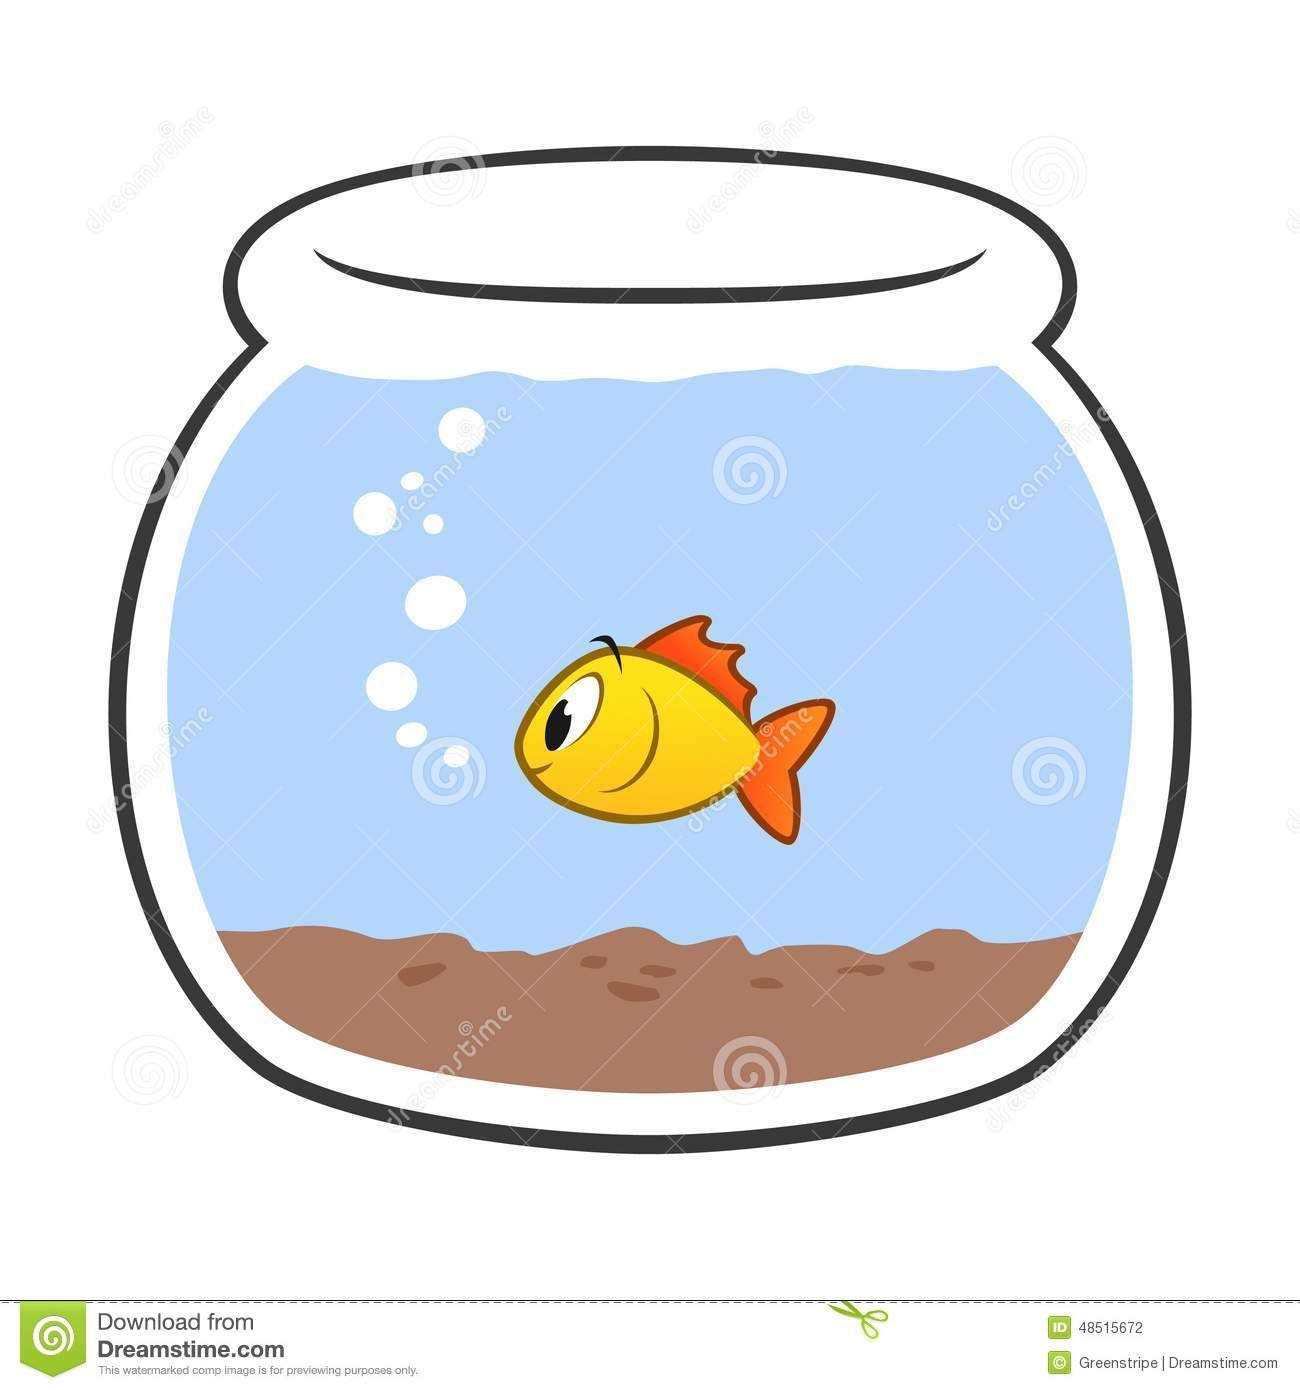 fishbowl clipart goldfish fish bowl clip art royalty free stock rh pinterest com free clipart fish tank fish tank clipart